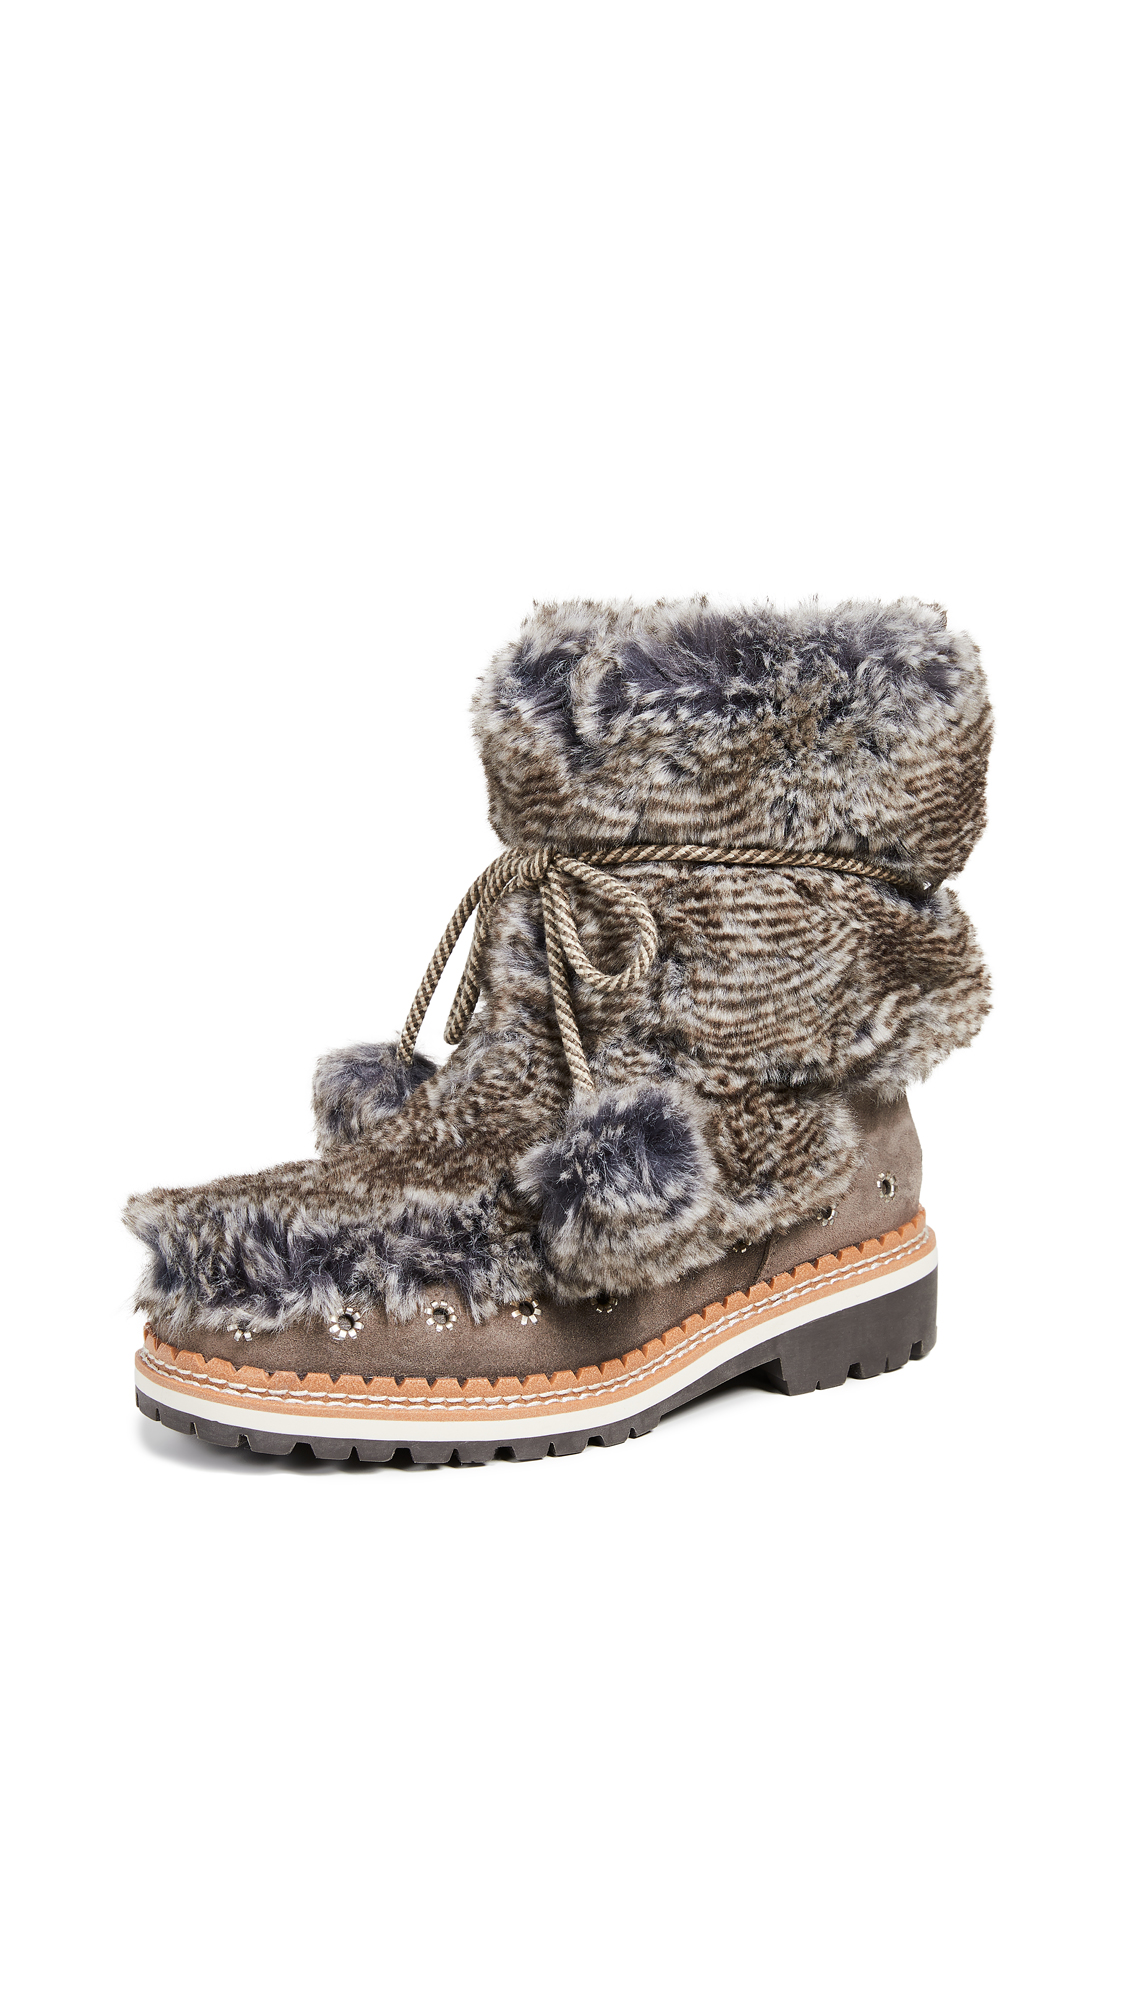 Sam Edelman Blanche Boots - Grey Multi/Flint Grey